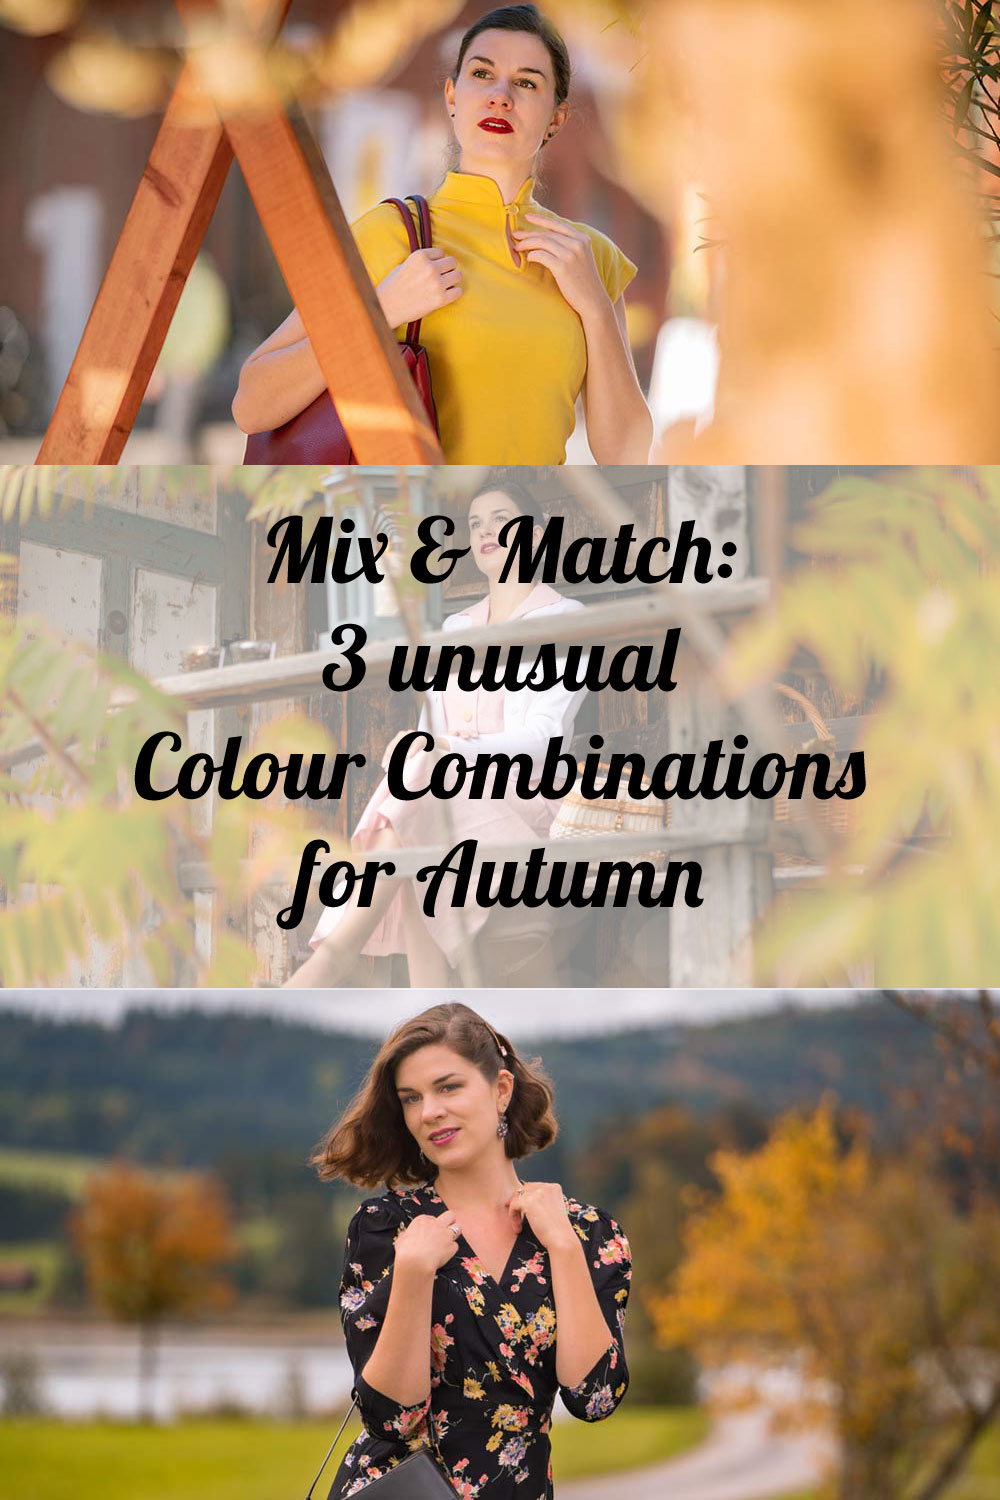 Mix & Match: 3 unusual Colour Combinations for Autumn